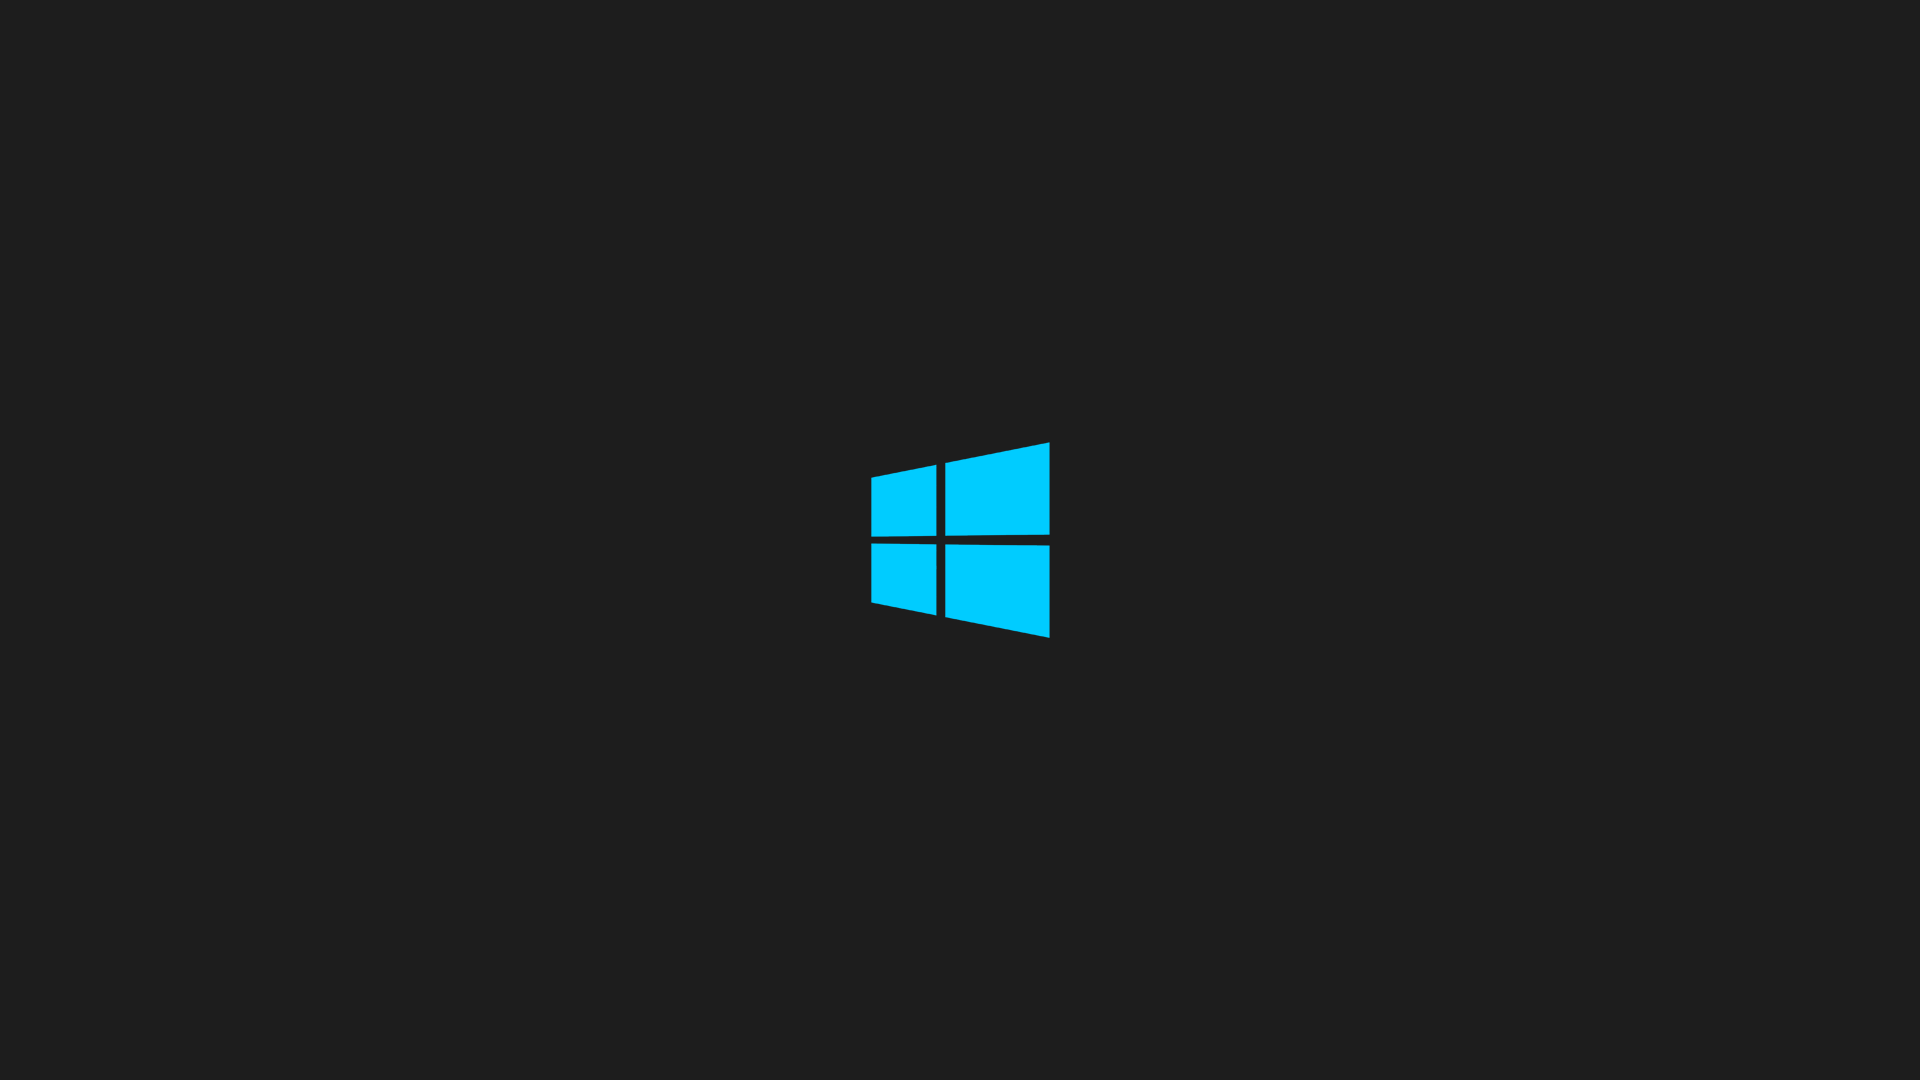 windows 8 full hd wallpaper and background image | 1920x1080 | id:437229